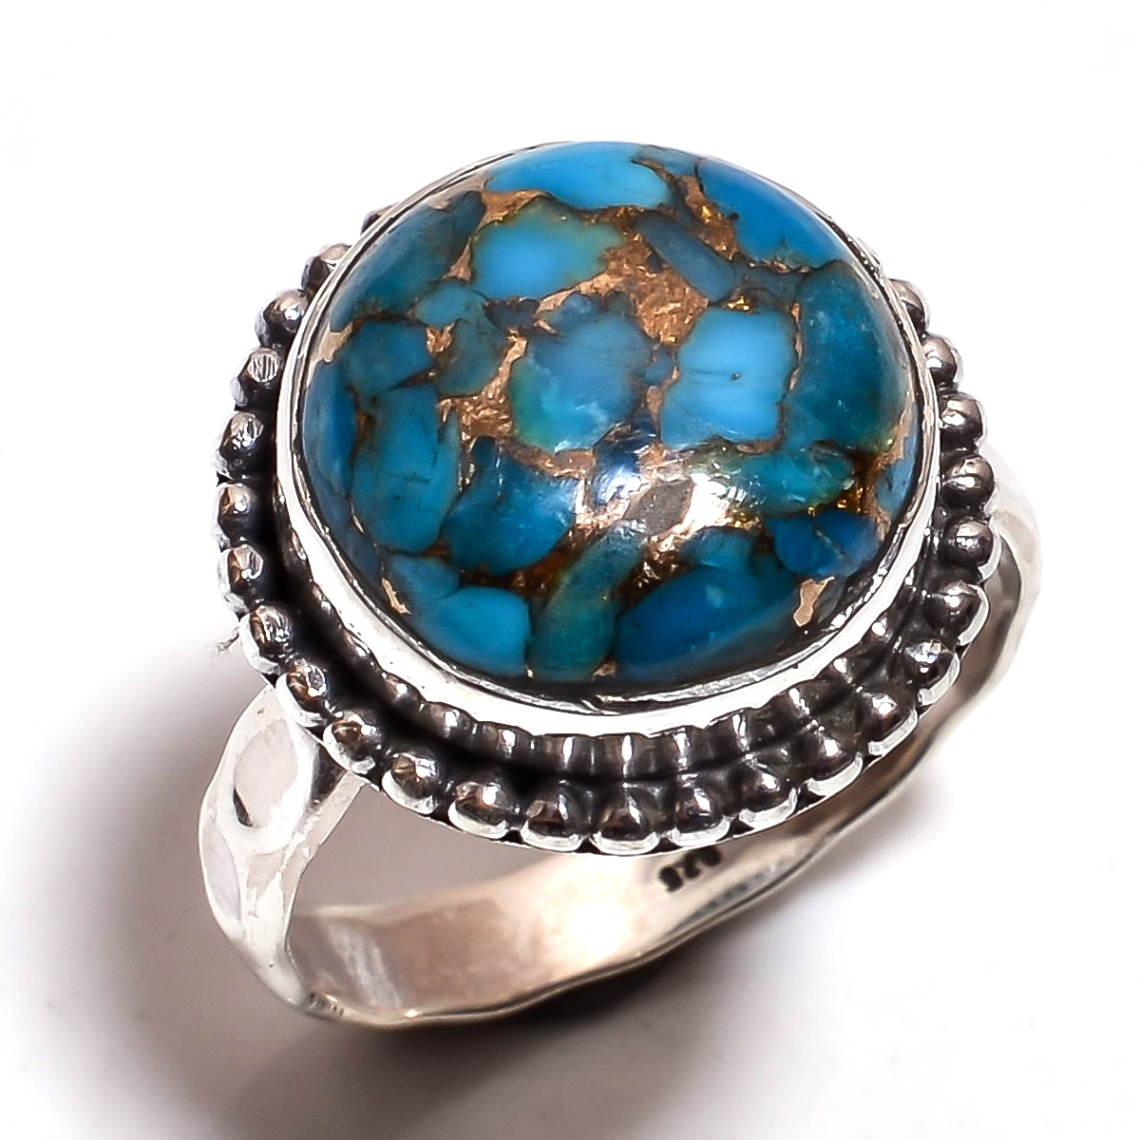 Blue Copper Turquoise Gemstone 925 Sterling Silver Hammered Ring Size 6.25